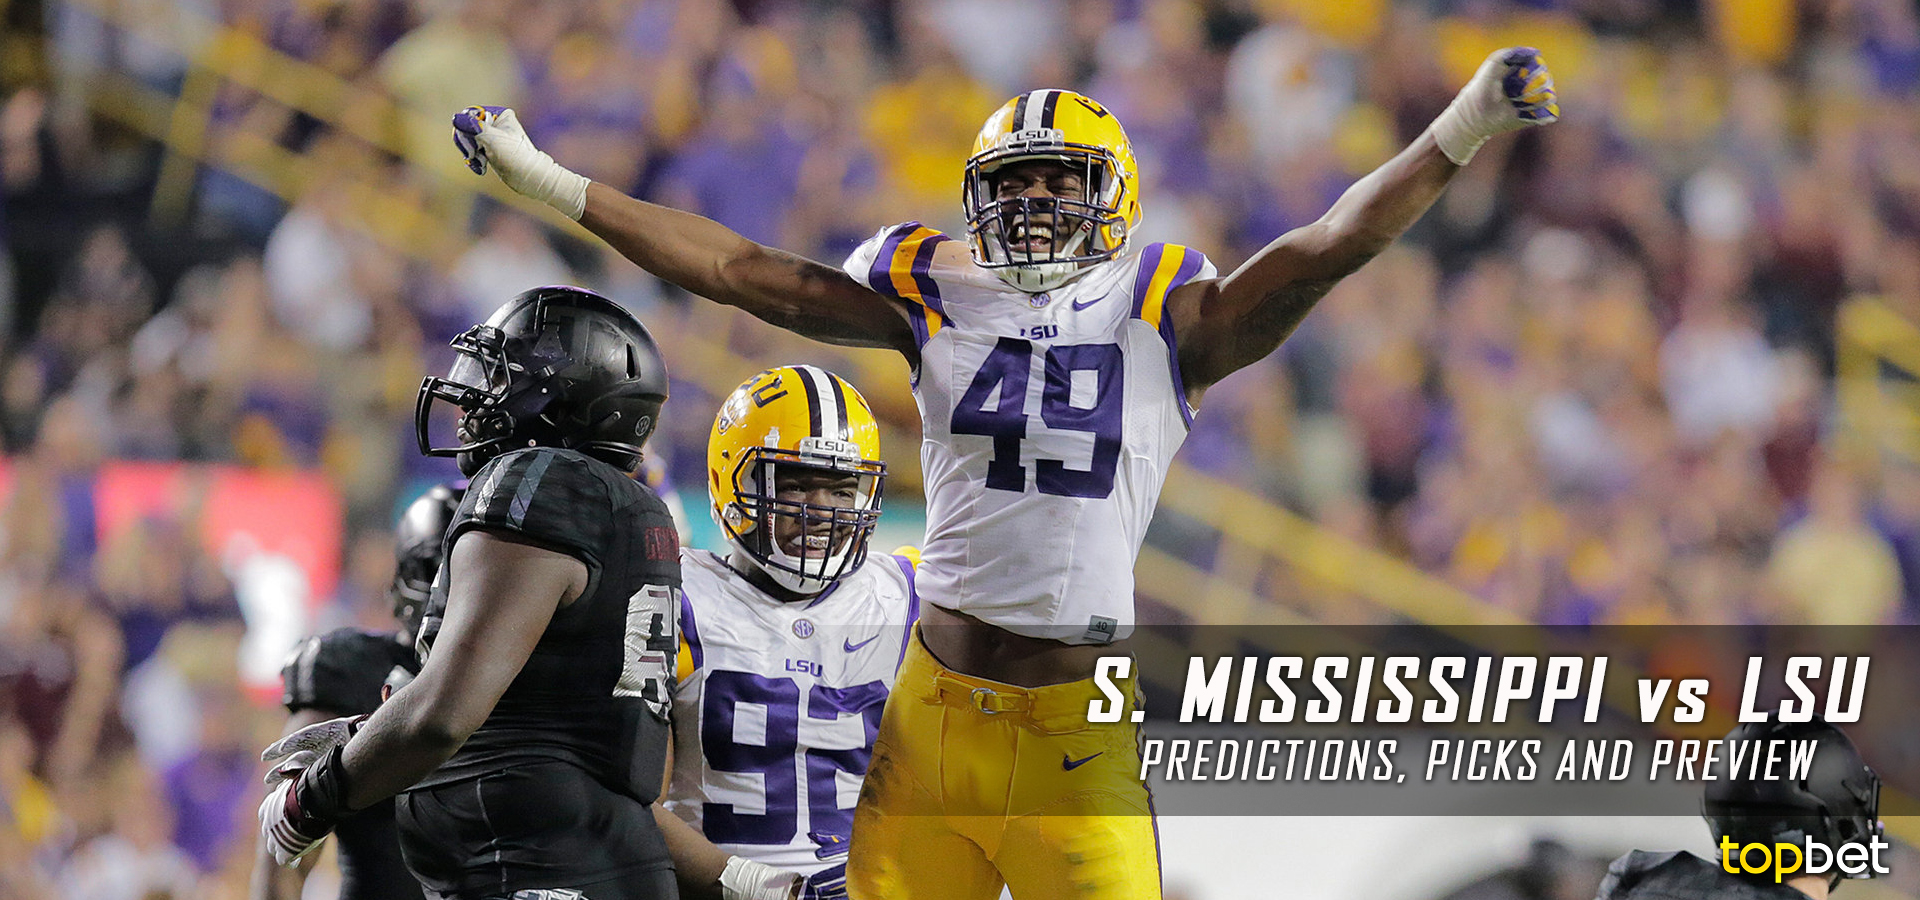 Southern Mississippi vs LSU Football Predictions and Preview